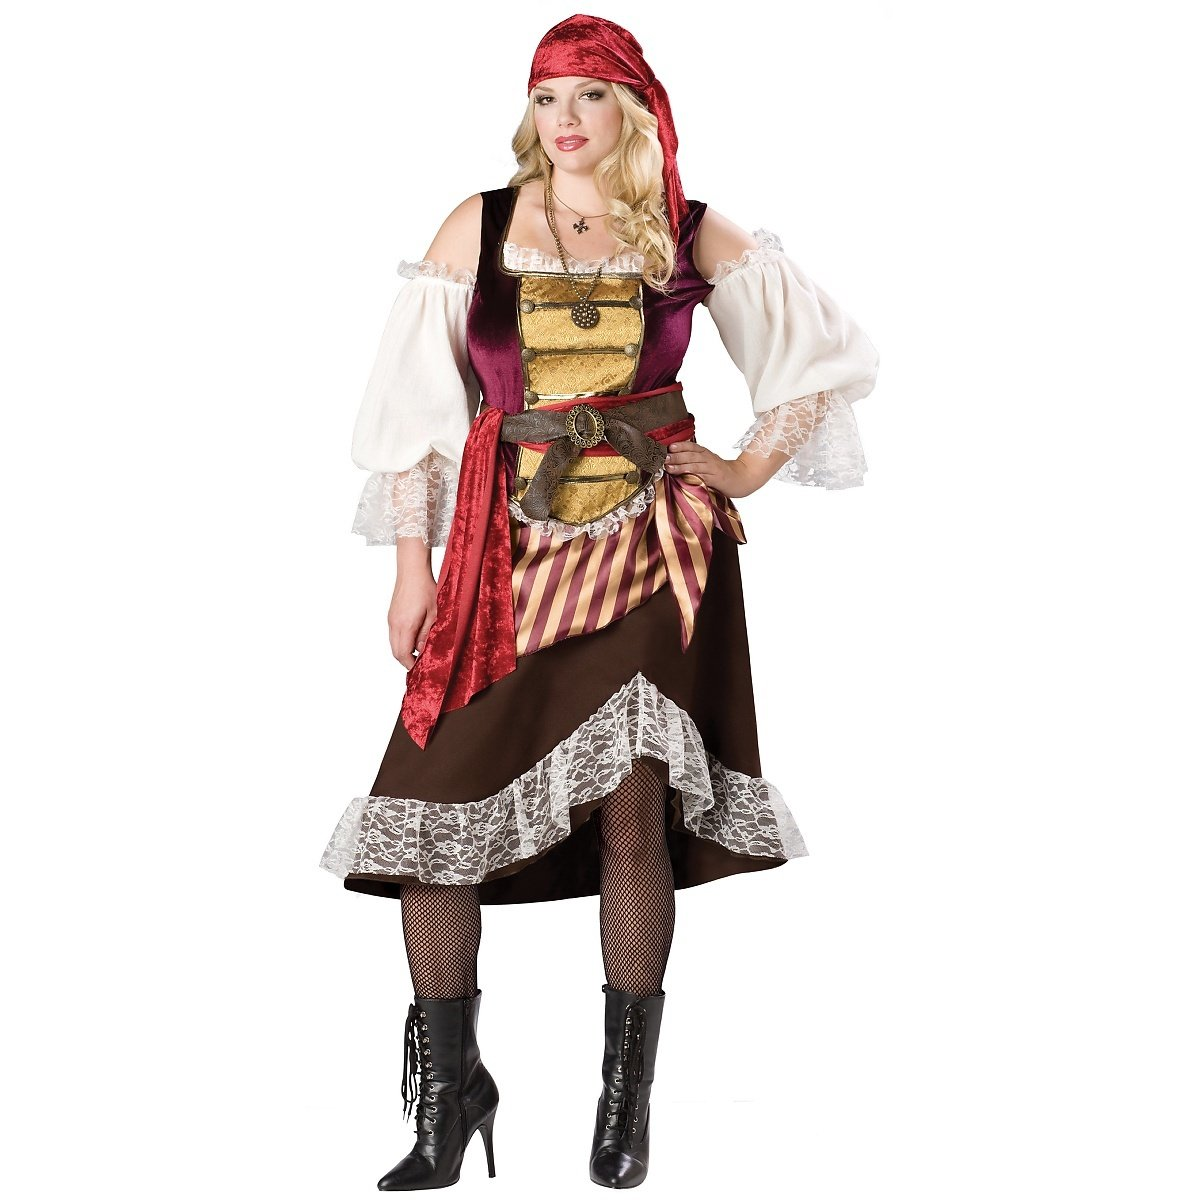 Deckhand Darlin Adult Costume - Plus Size 3X by InCharacter (Image #1)